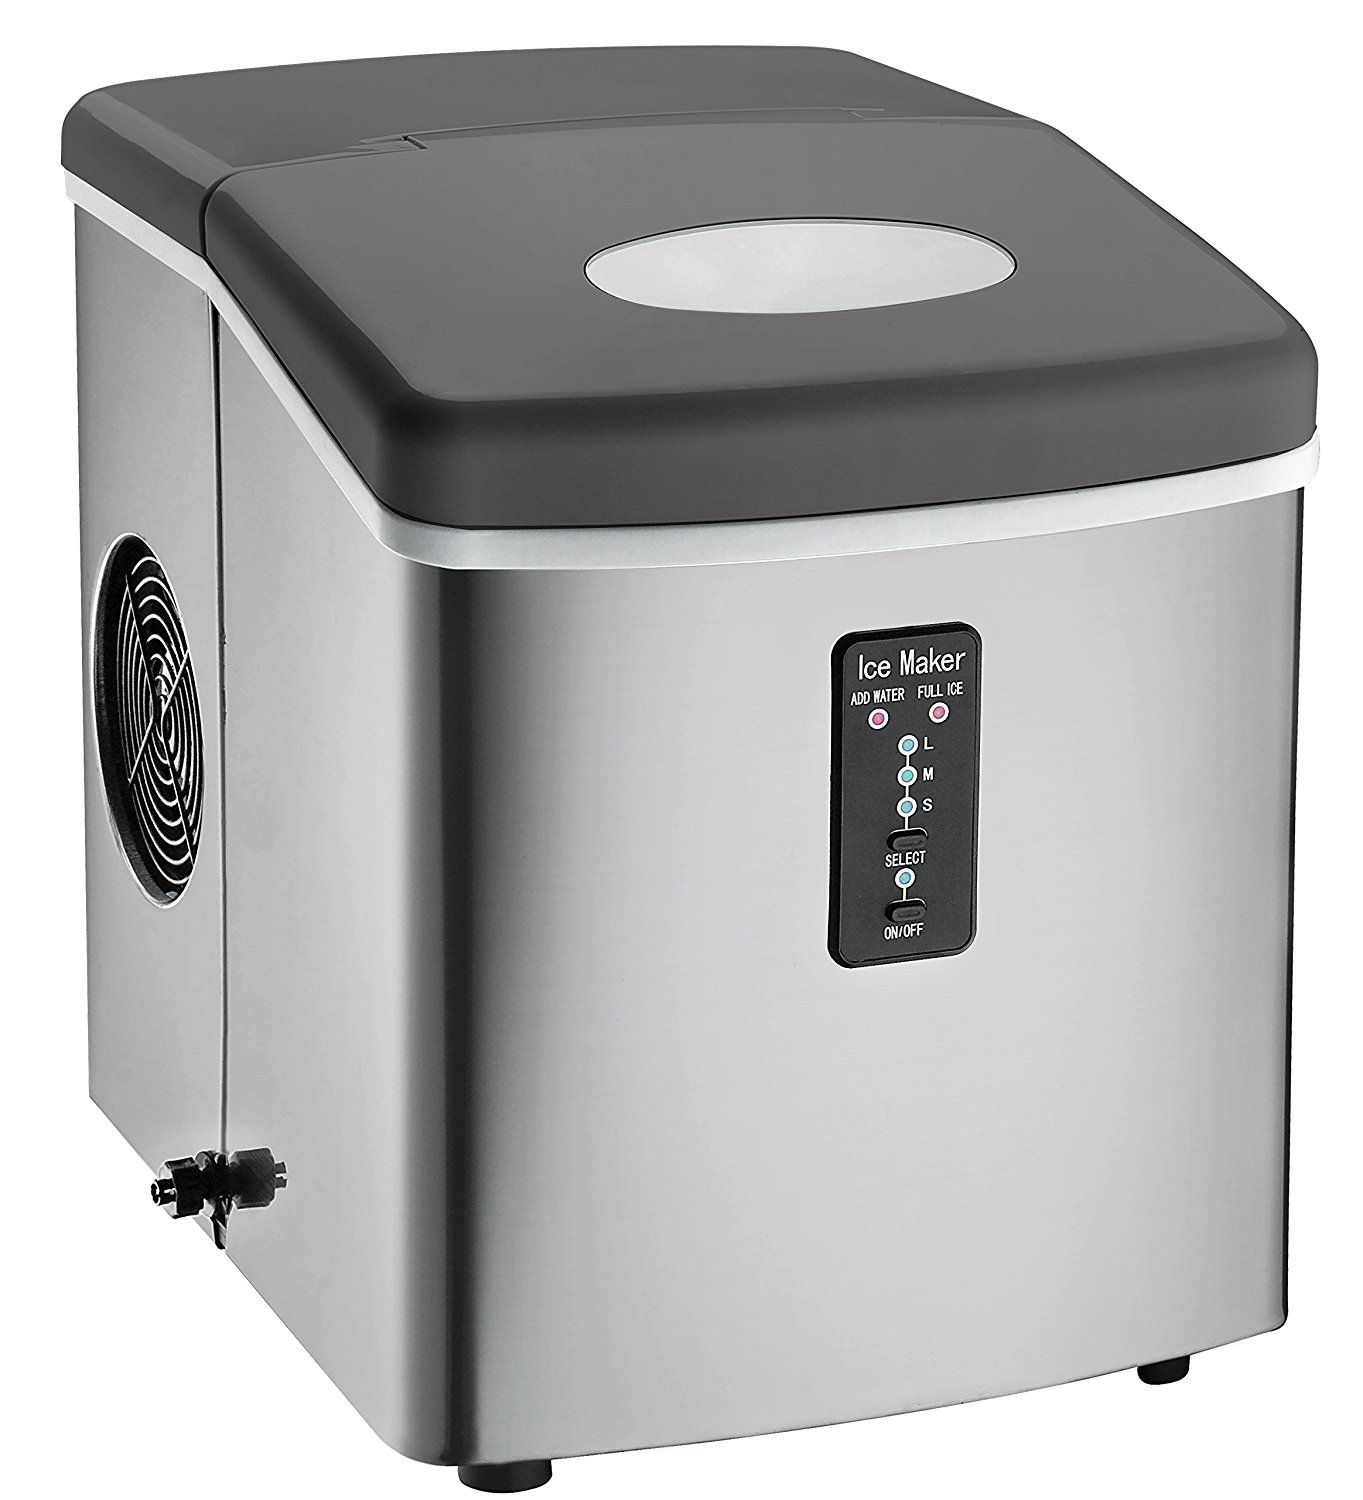 Countertop Ice Maker Walmart Igloo Countertop Compact 26 Lb Portable Freestanding Ice Maker With Over Sized Ice Bucket Ice103 Stainless Steel Refurbished